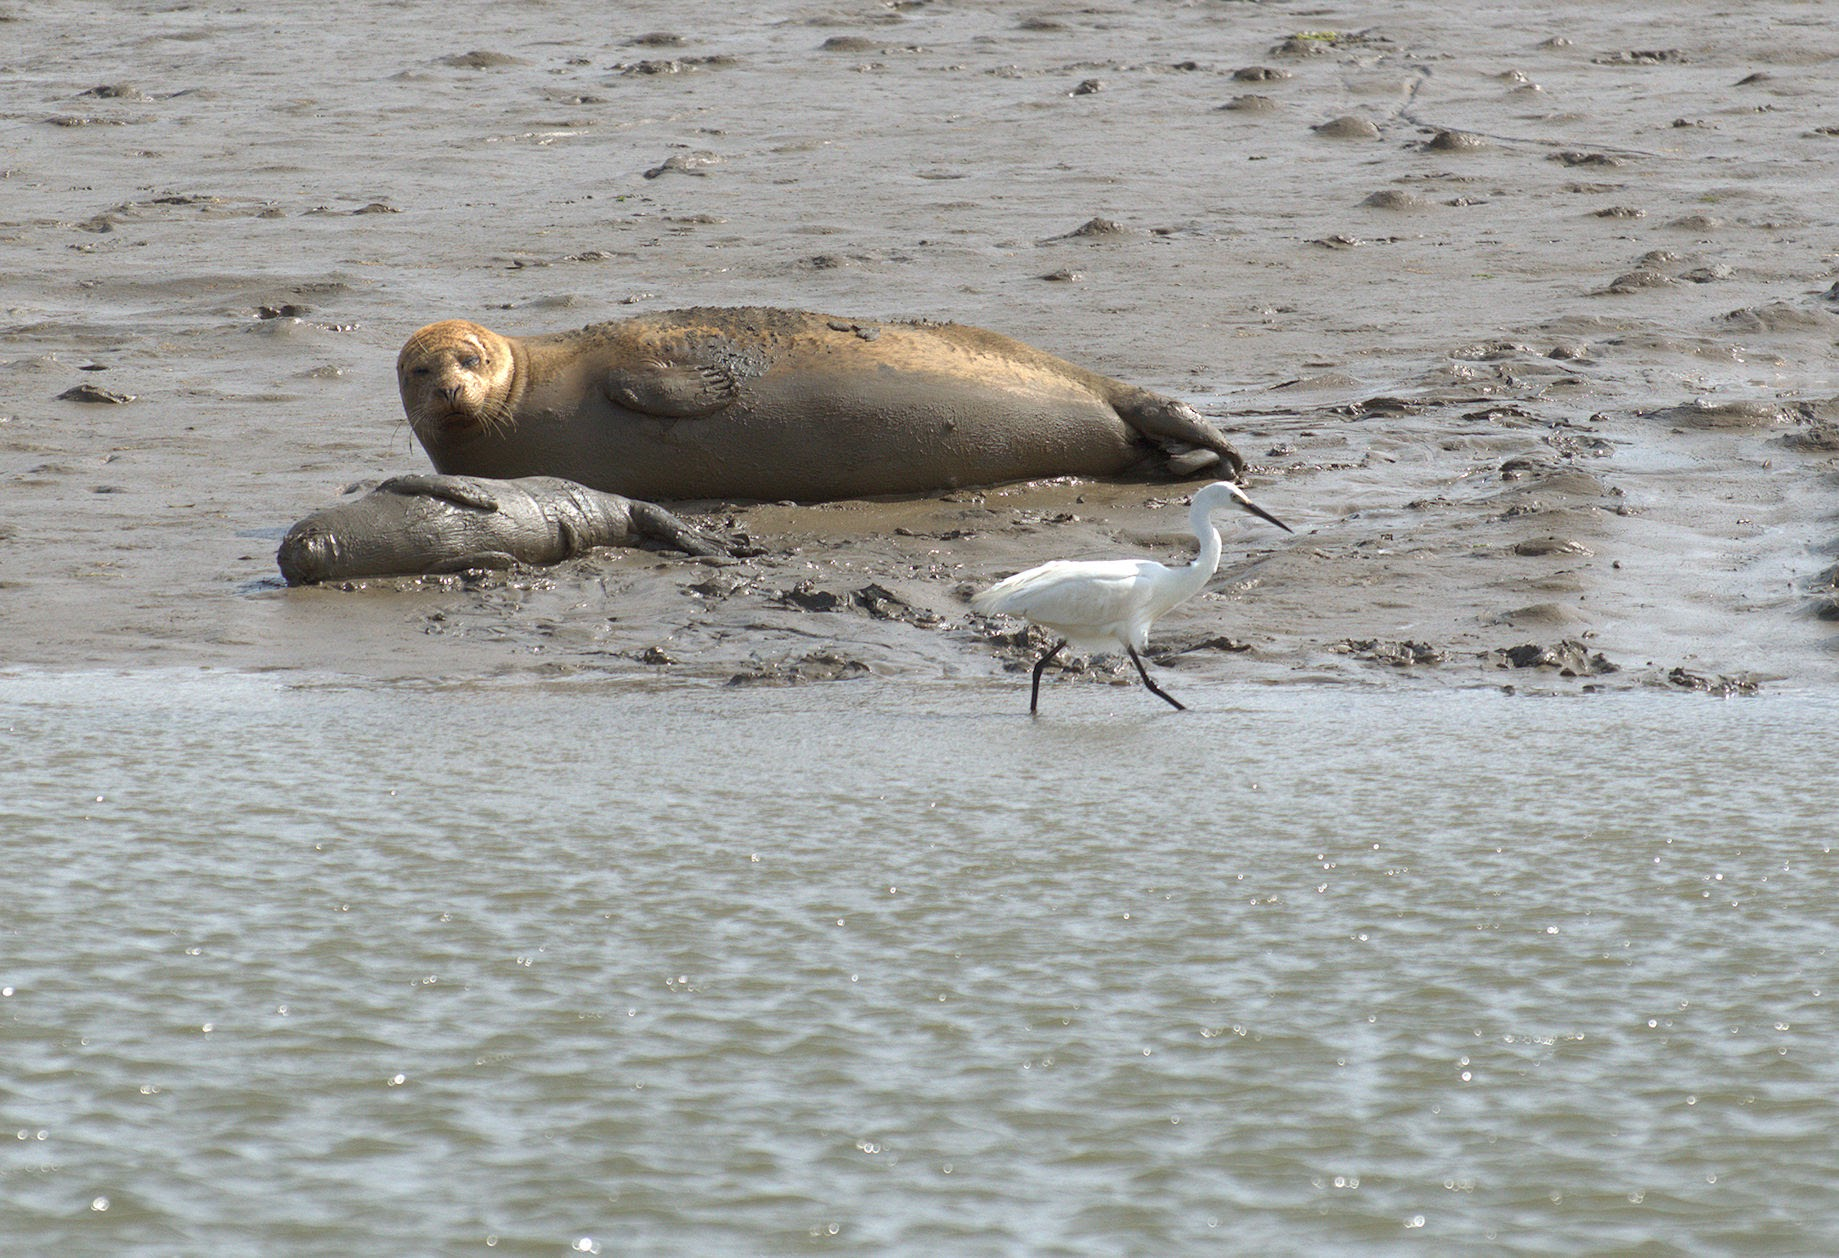 Some 138 harbour seal pups were counted in the Thames in 2018 (Graham Mee/SE RSPB/PA)